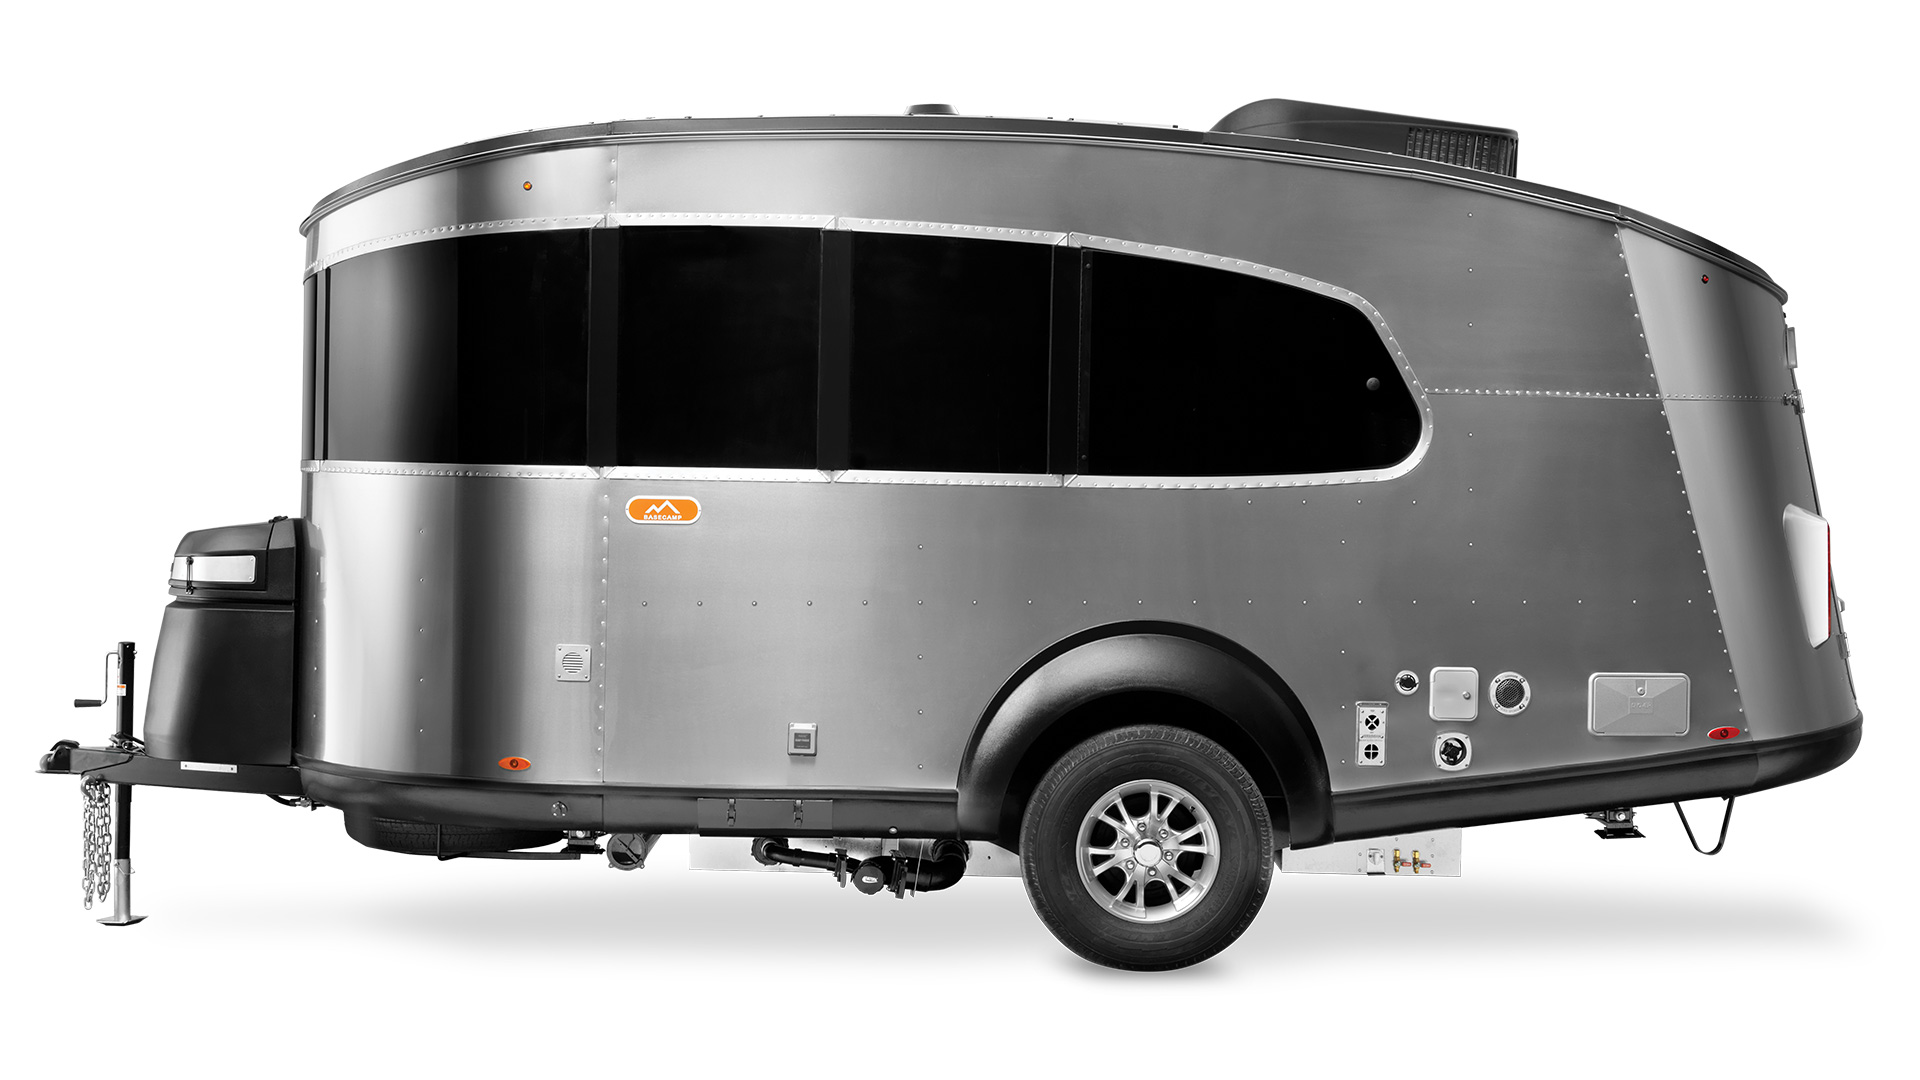 Airstream-Basecamp-20-Exterior-Street-Side-Profile